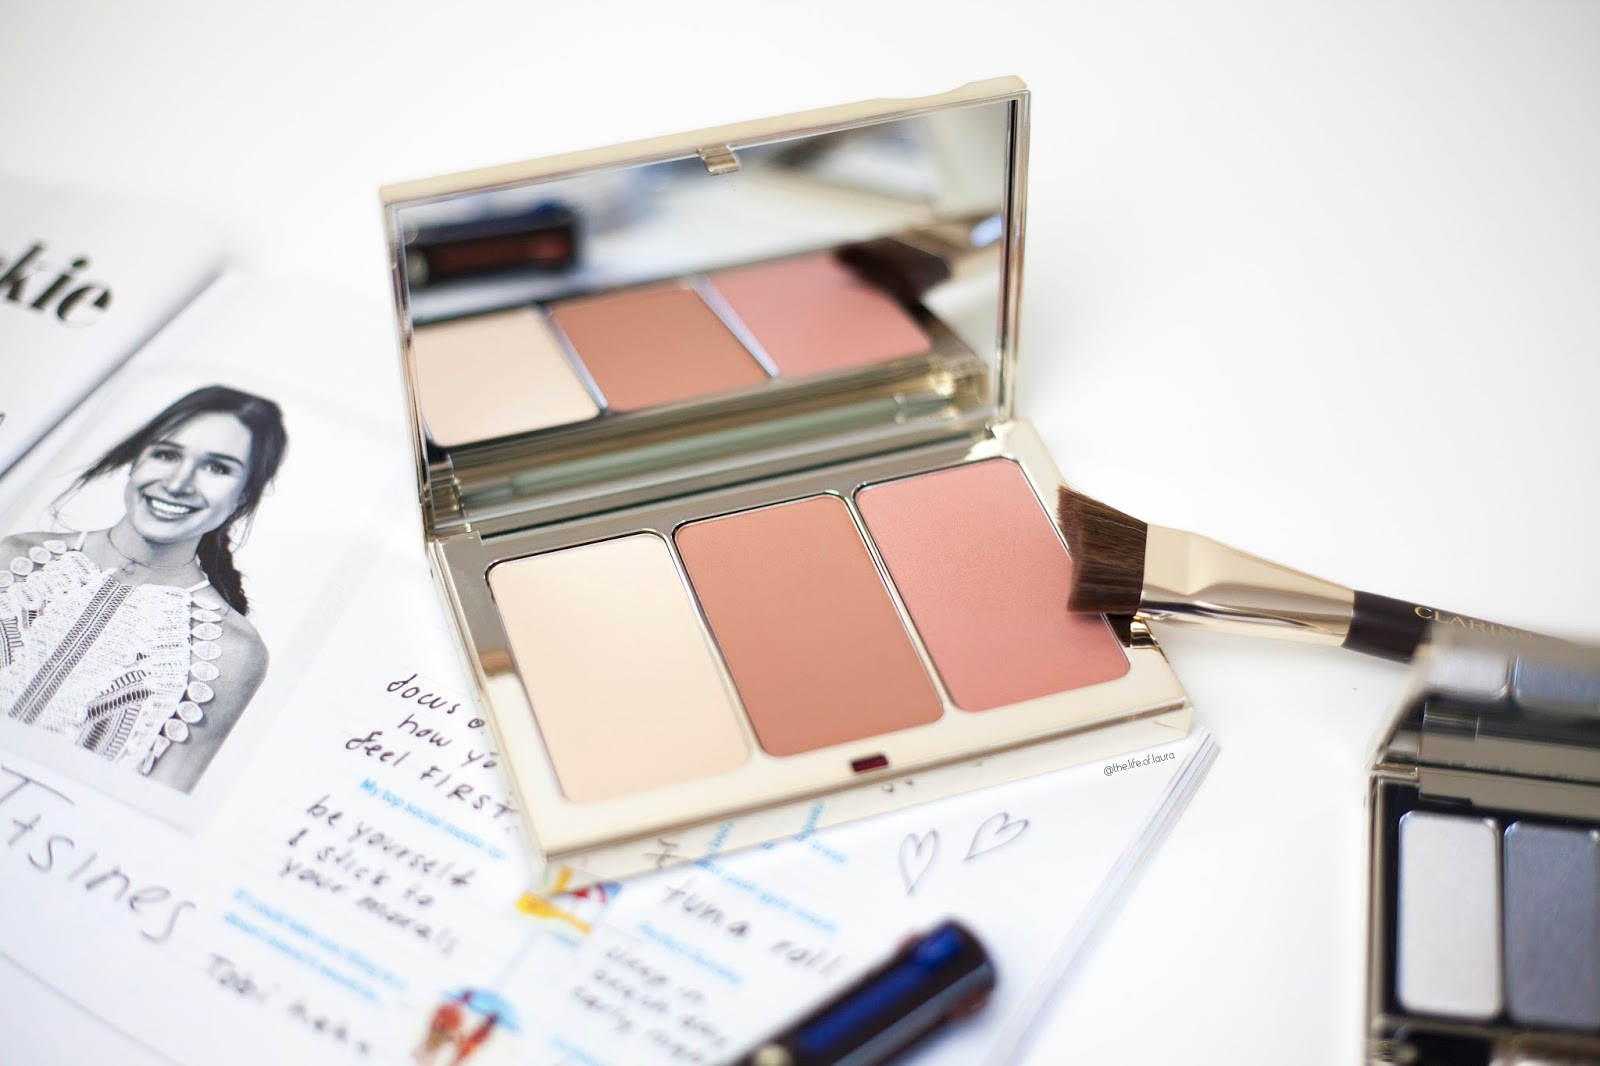 Clarins Spring Make Up Face Contouring Palette